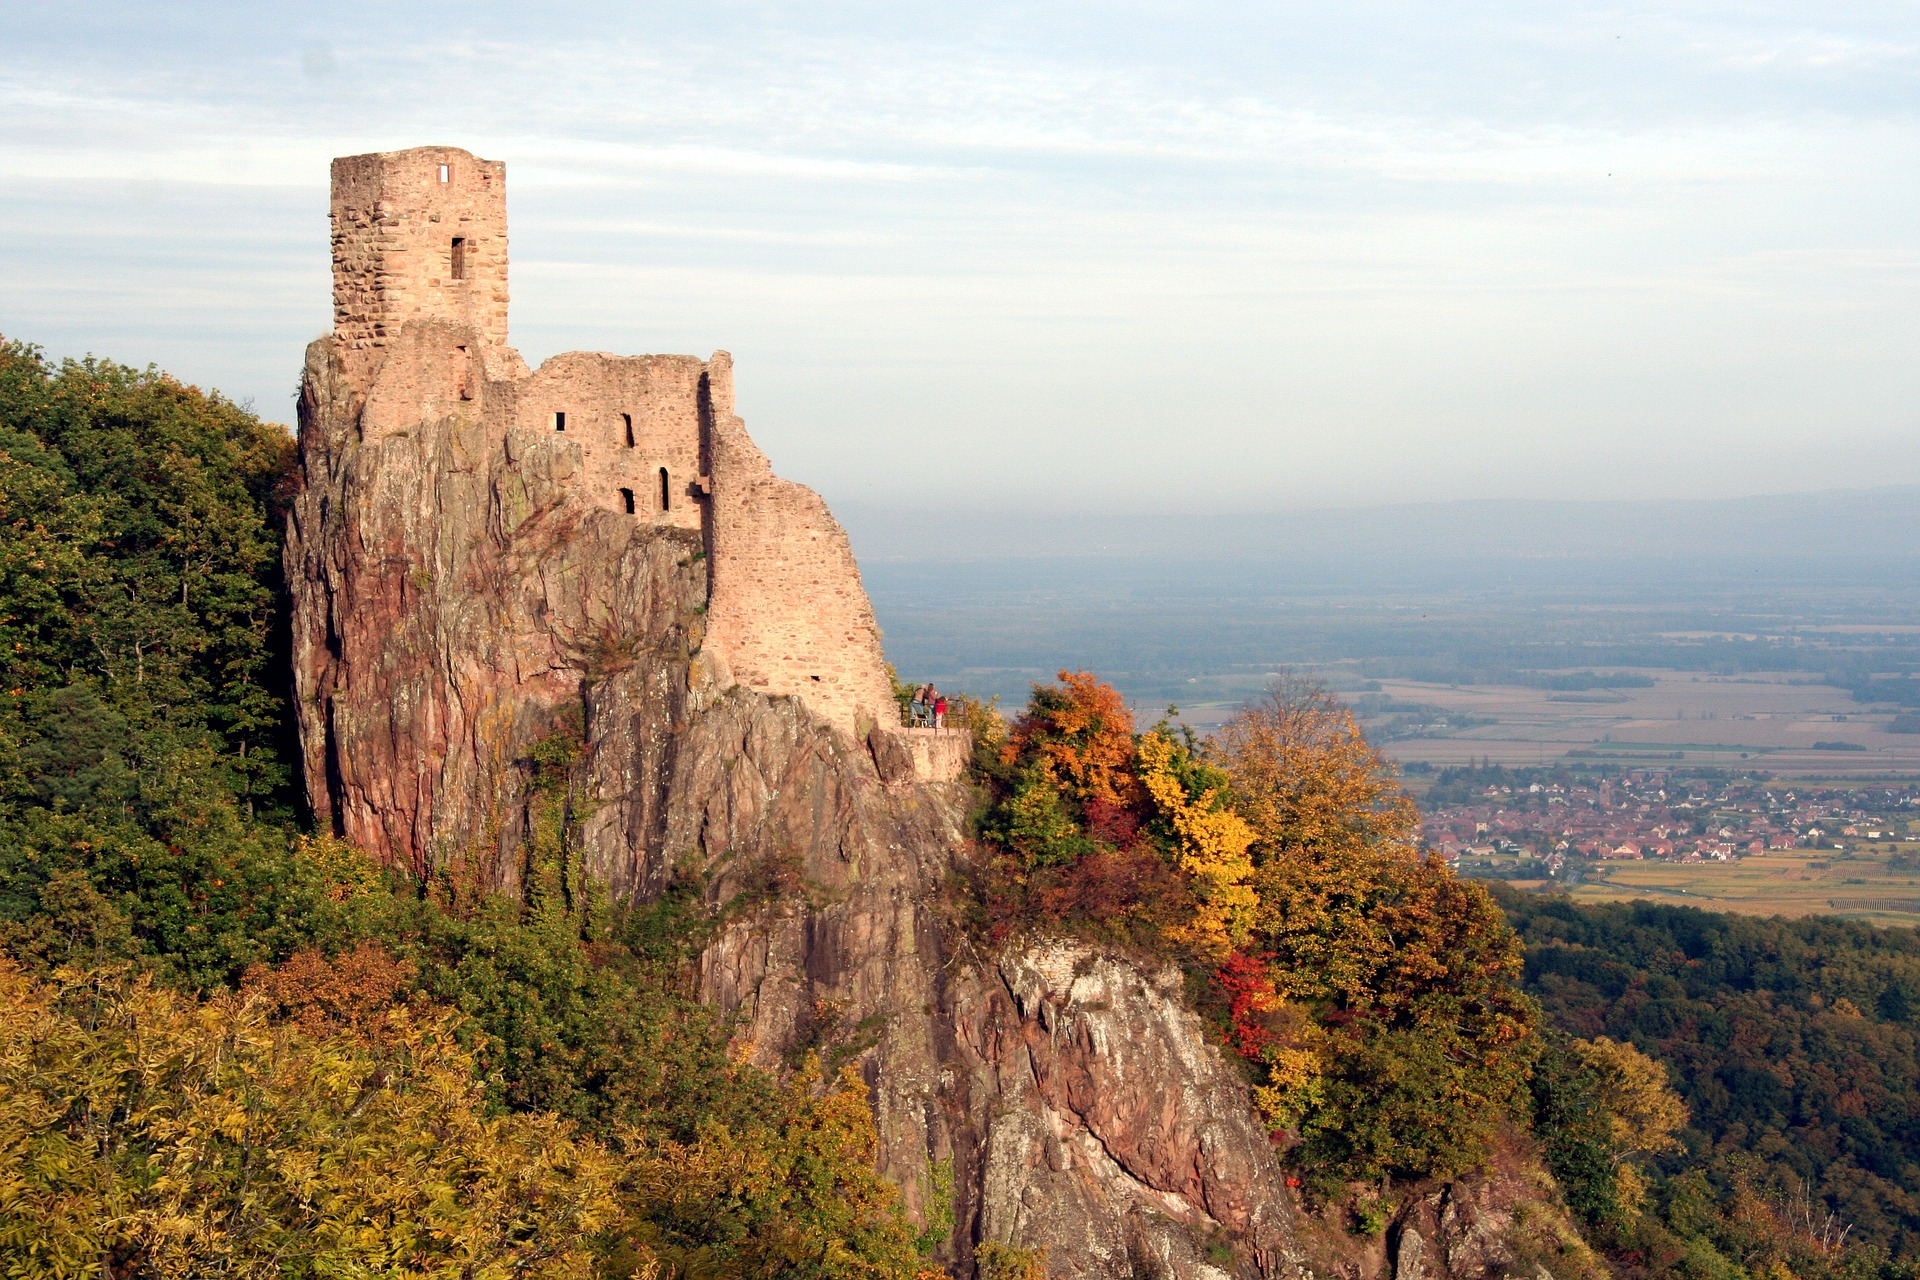 From North Vosges to Kaysersberg (and way back) - 4 stages